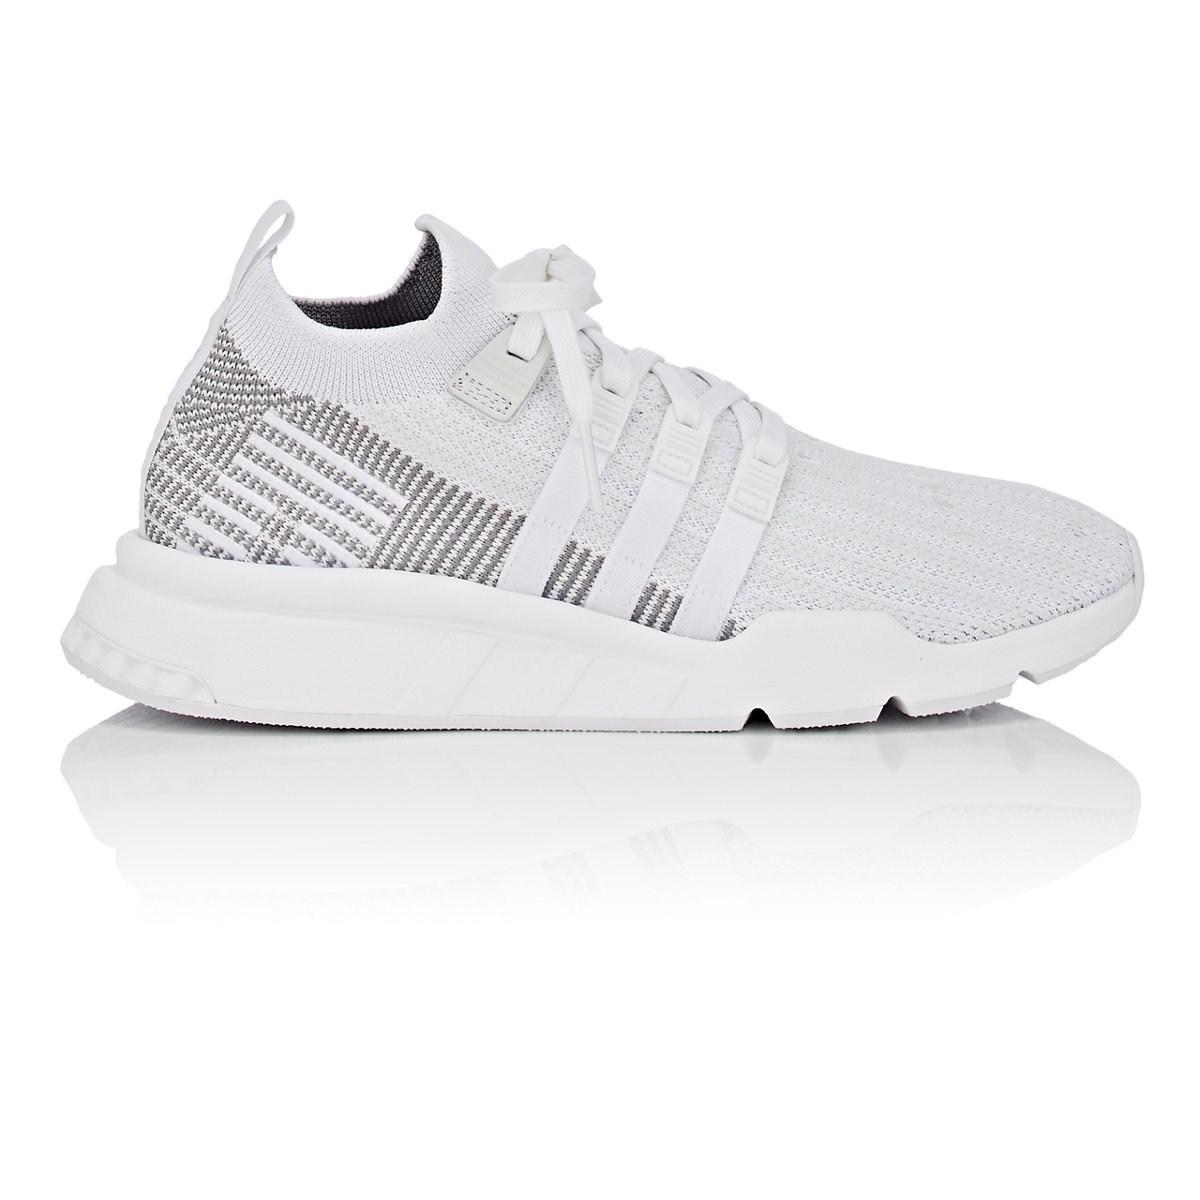 on sale 4cae0 03cf7 adidas Eqt Support Mid Adv Primeknit Sneakers in White for M